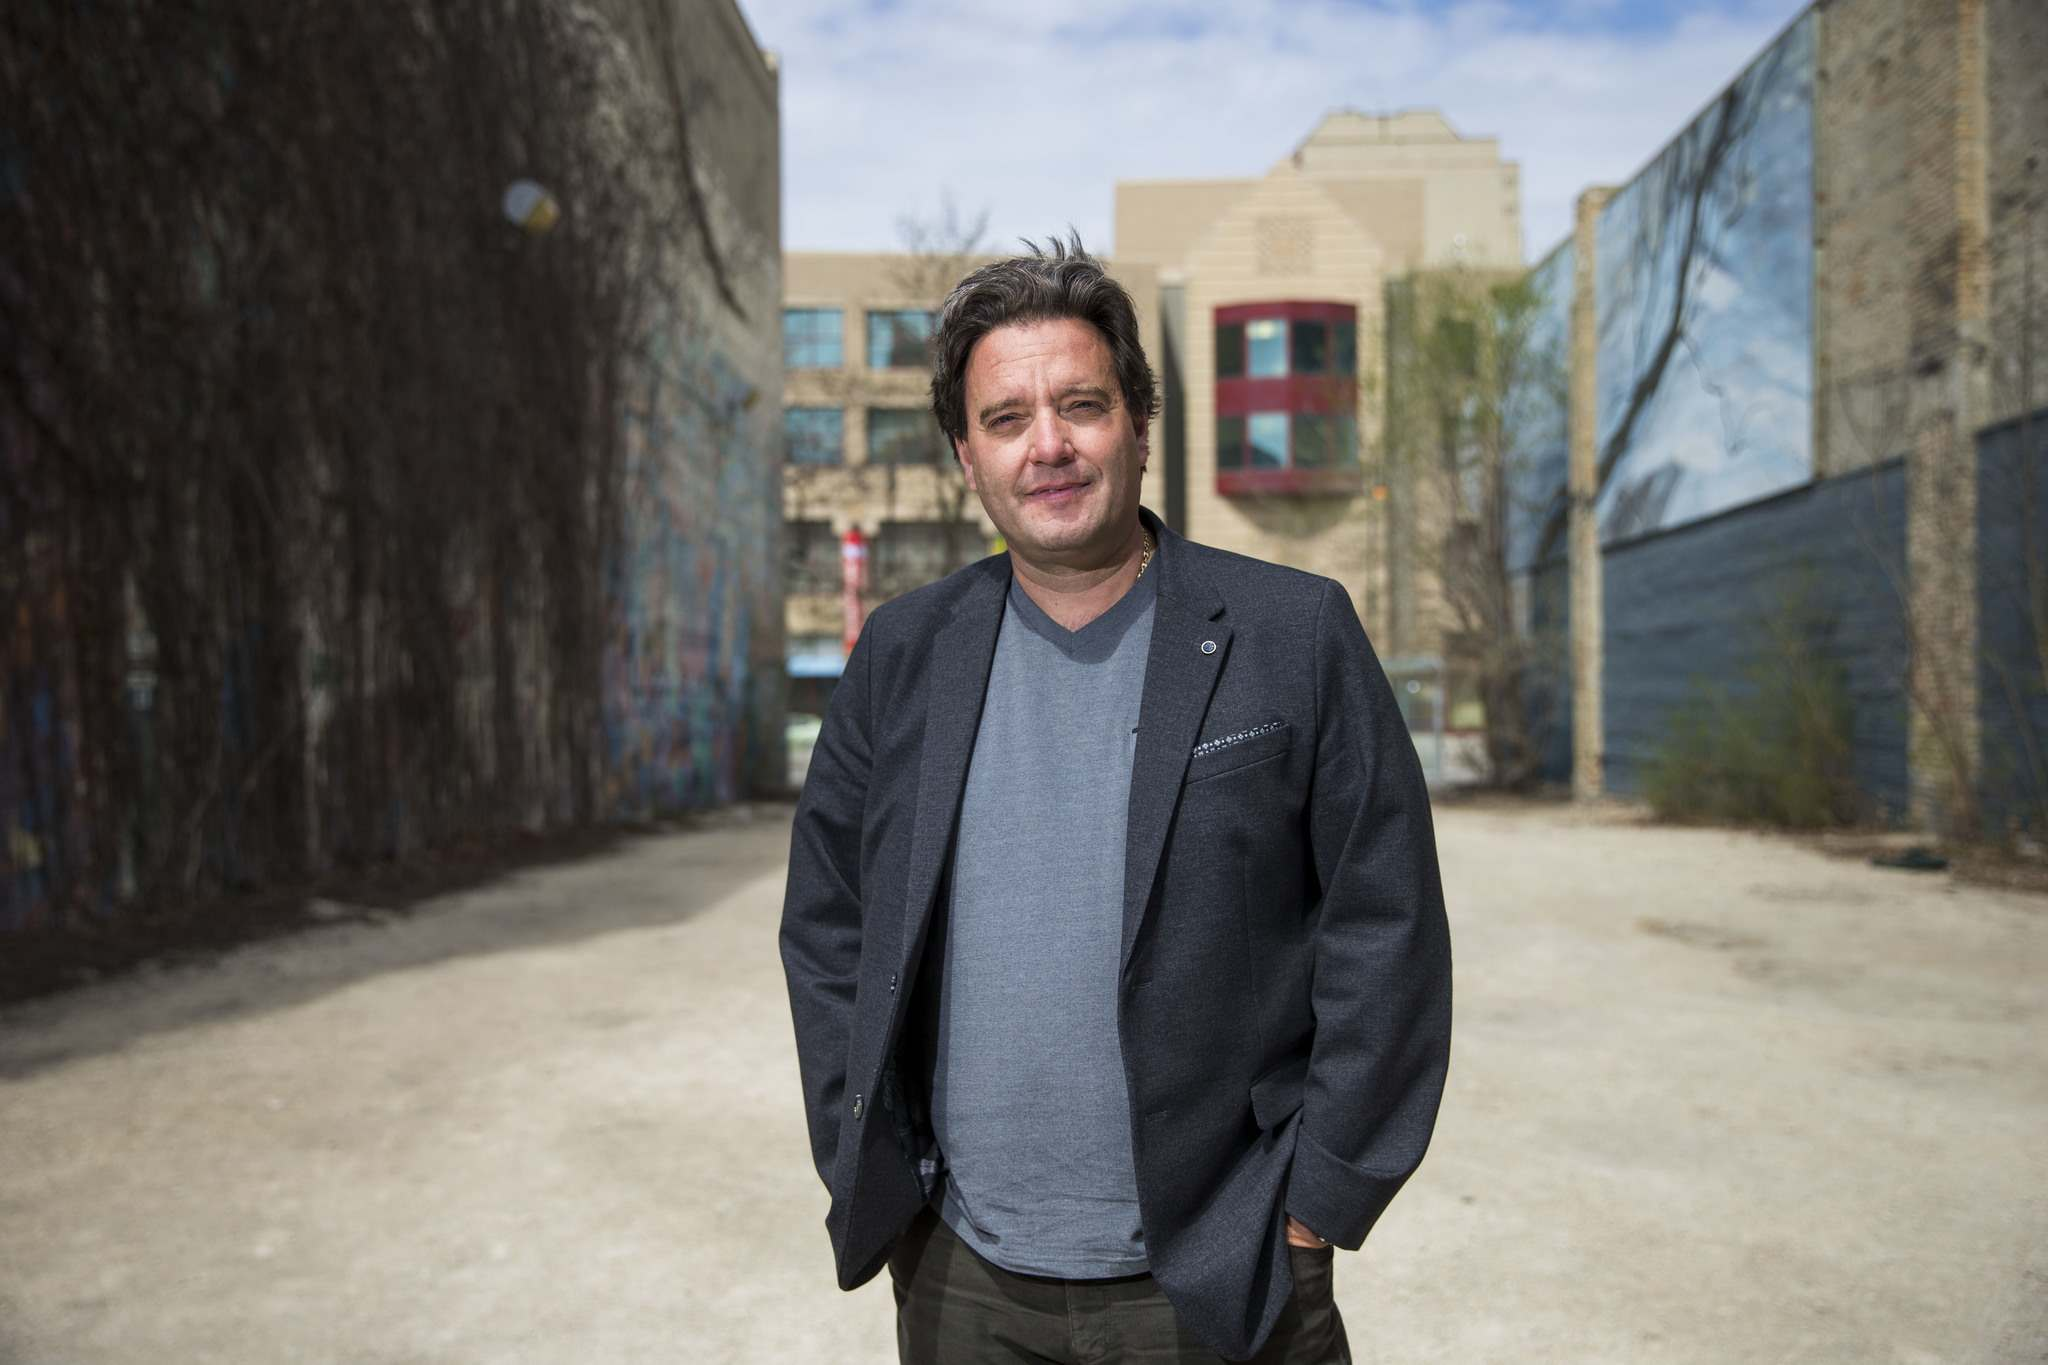 MIKAELA MACKENZIE / WINNIPEG FREE PRESS</p><p>Stefano Grande says the need for public toilets downtown has steadily increased.</p>